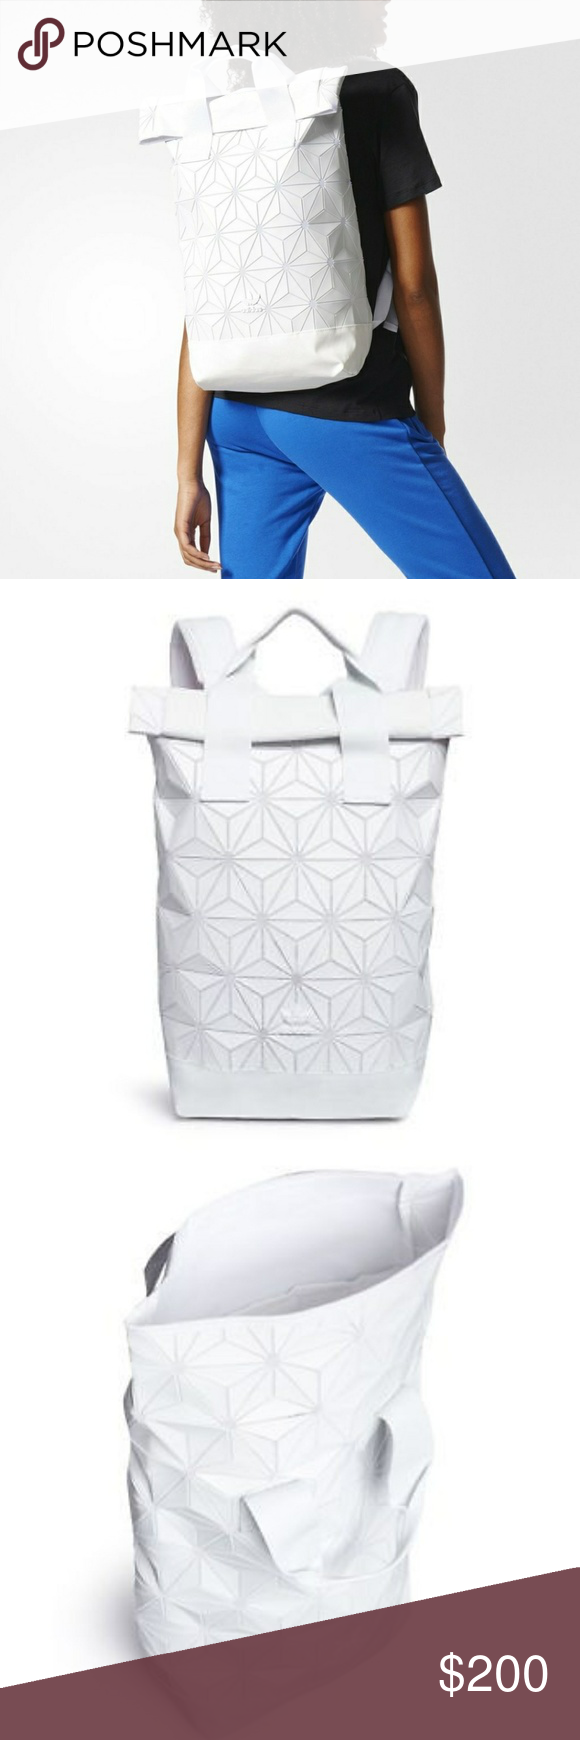 b9648aca6dda Adidas Originals issey miyake backpack Flash sale Selling for 200 on e8 y  Price is firm Adidas Originals X Issey Miyake 3D Roll Top Backpack (BJ9562).